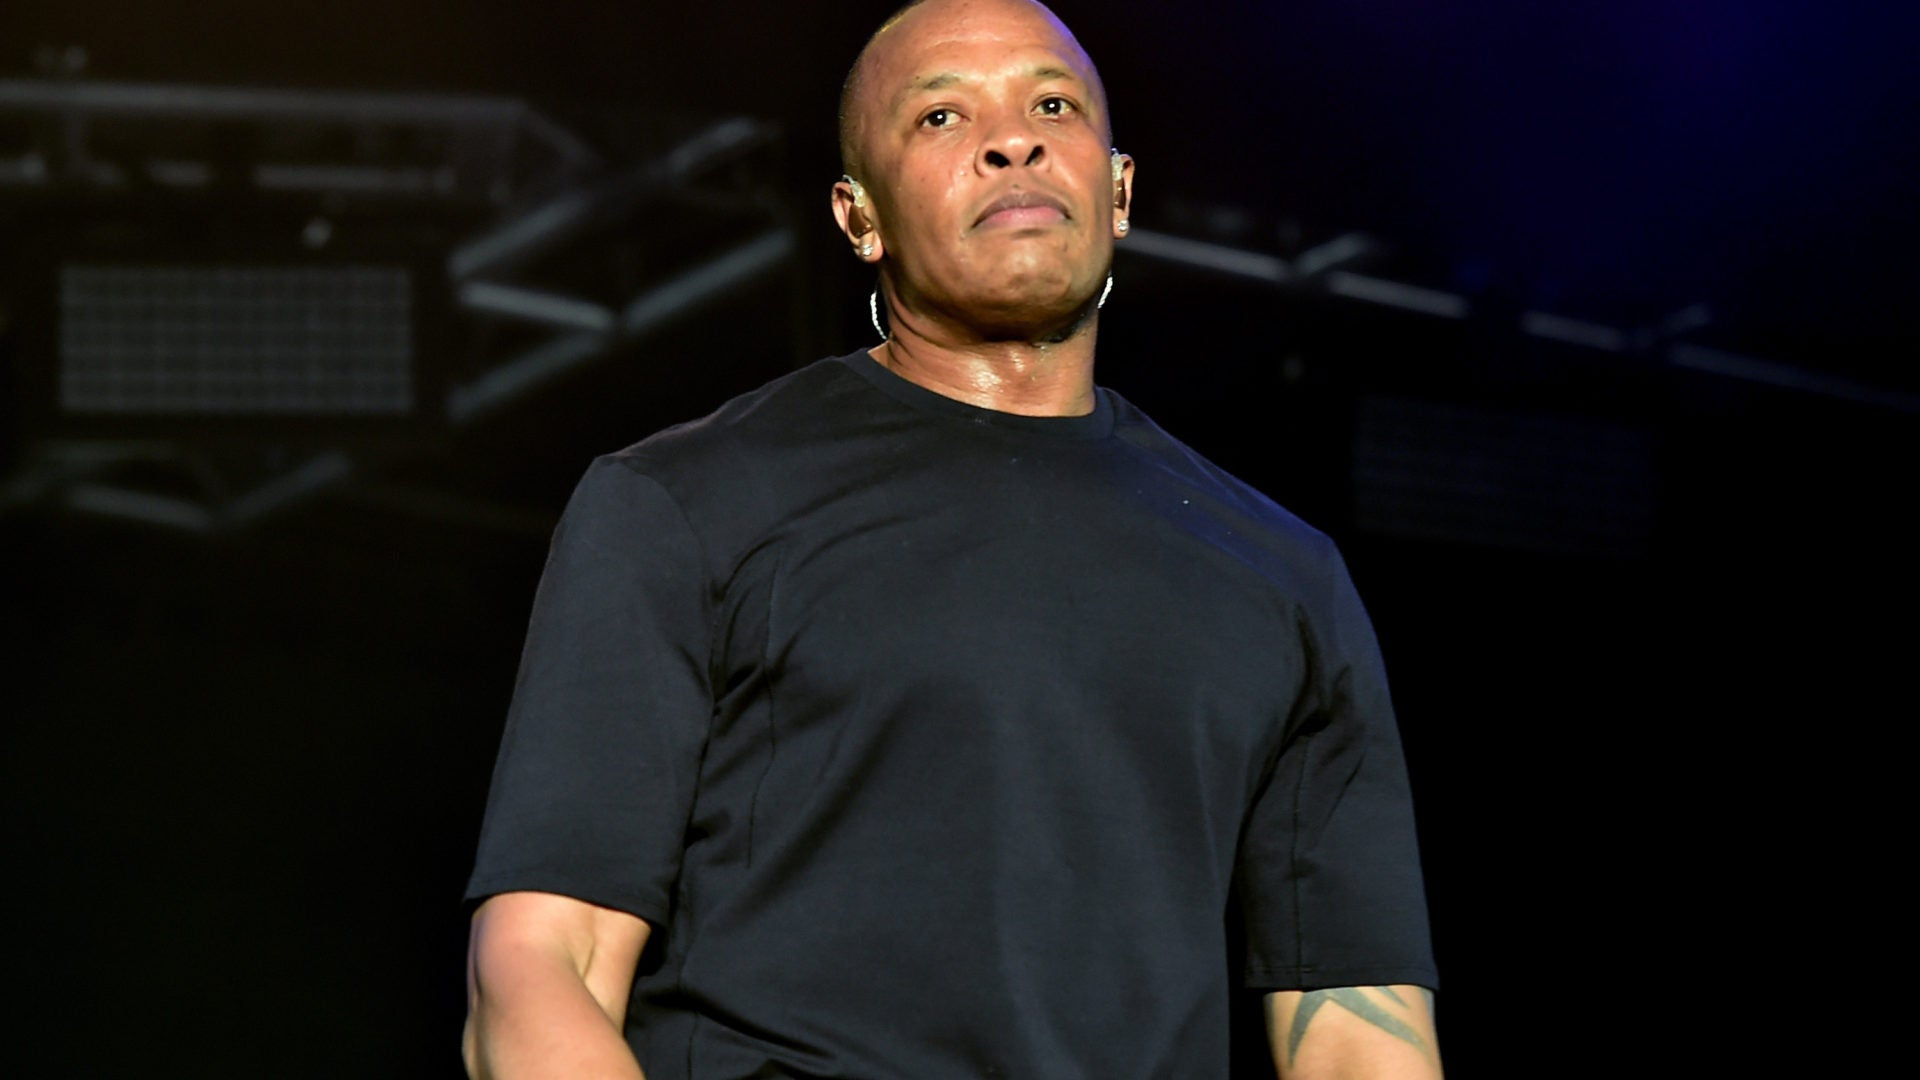 Dr. Dre Brags About 'No Jail Time' After Daughter Accepted Into USC